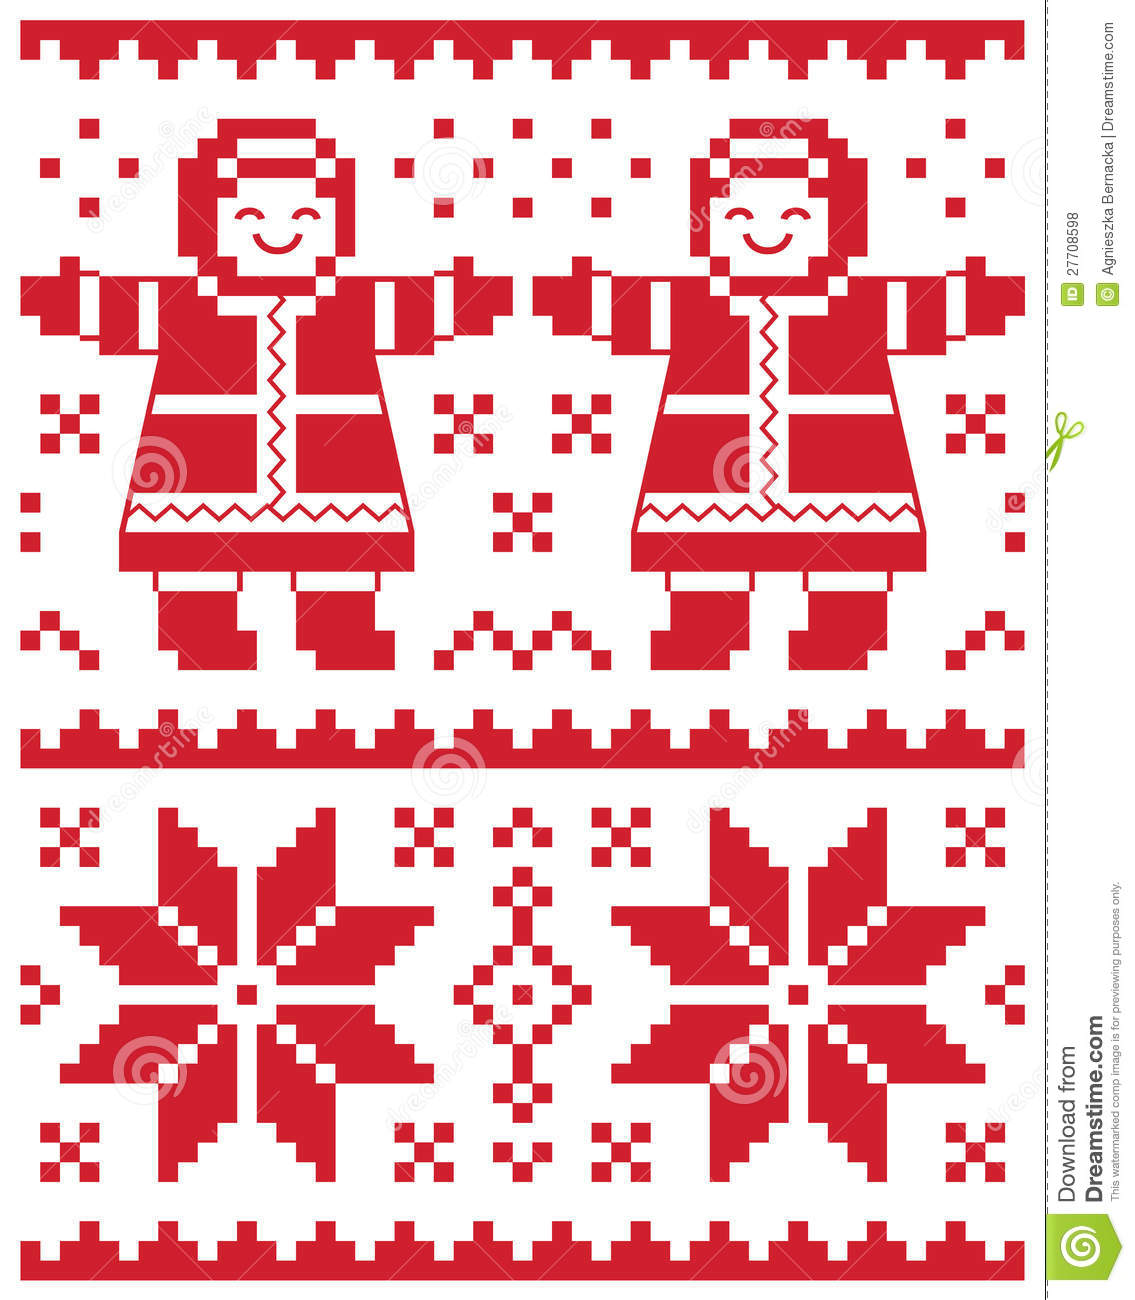 Knitting Patterns For Christmas Cards : Christmas Card - Knitted Pattern Royalty Free Stock Photos - Image: 27708598